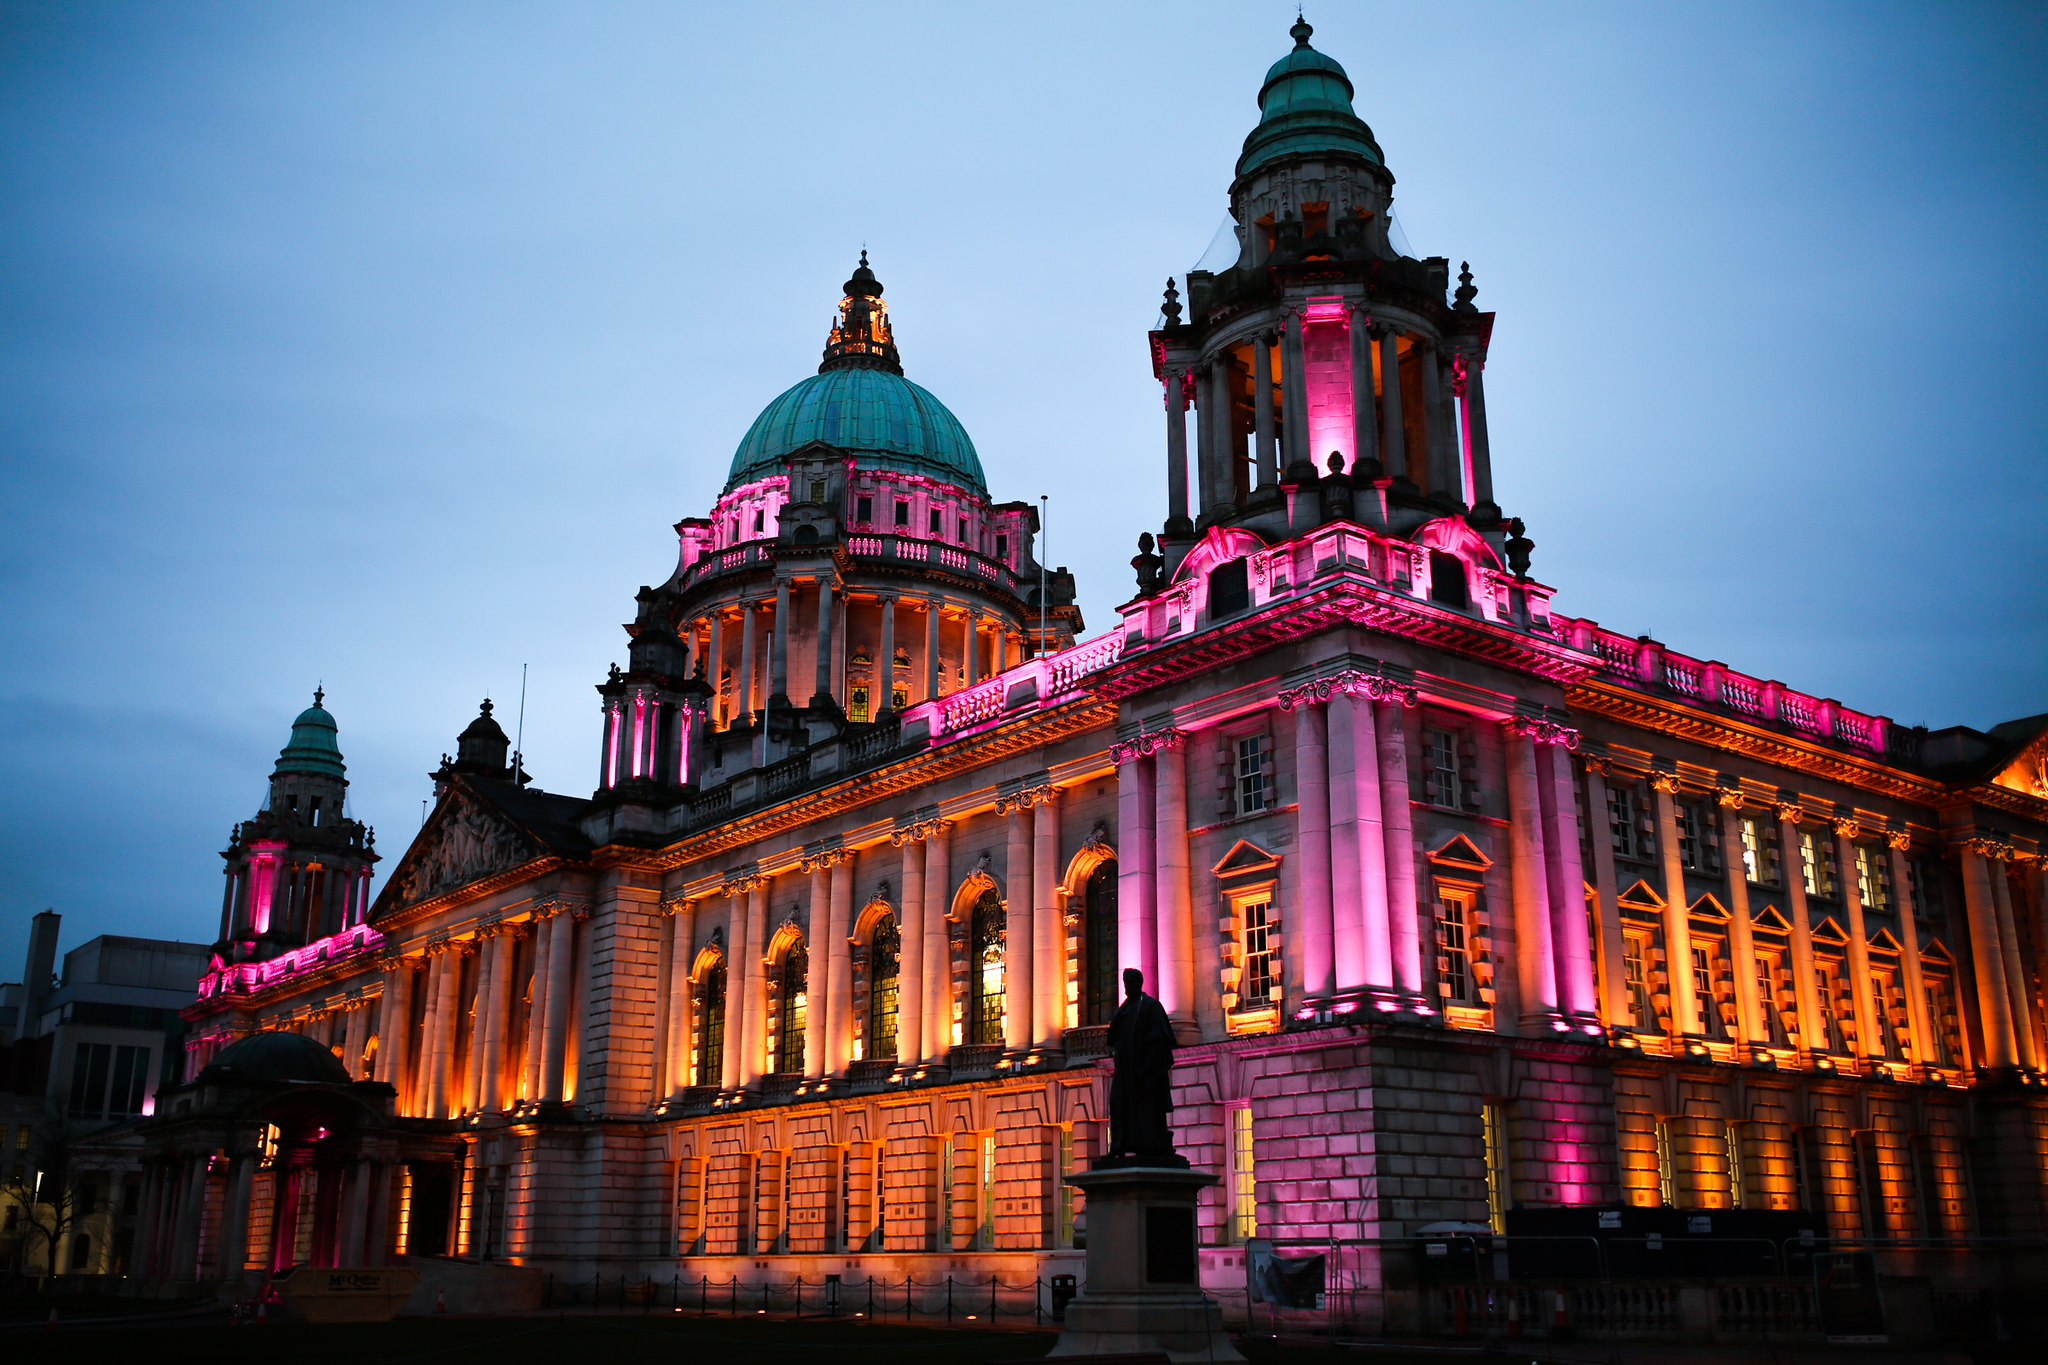 City Hall lit up for 2018 Sports Awards